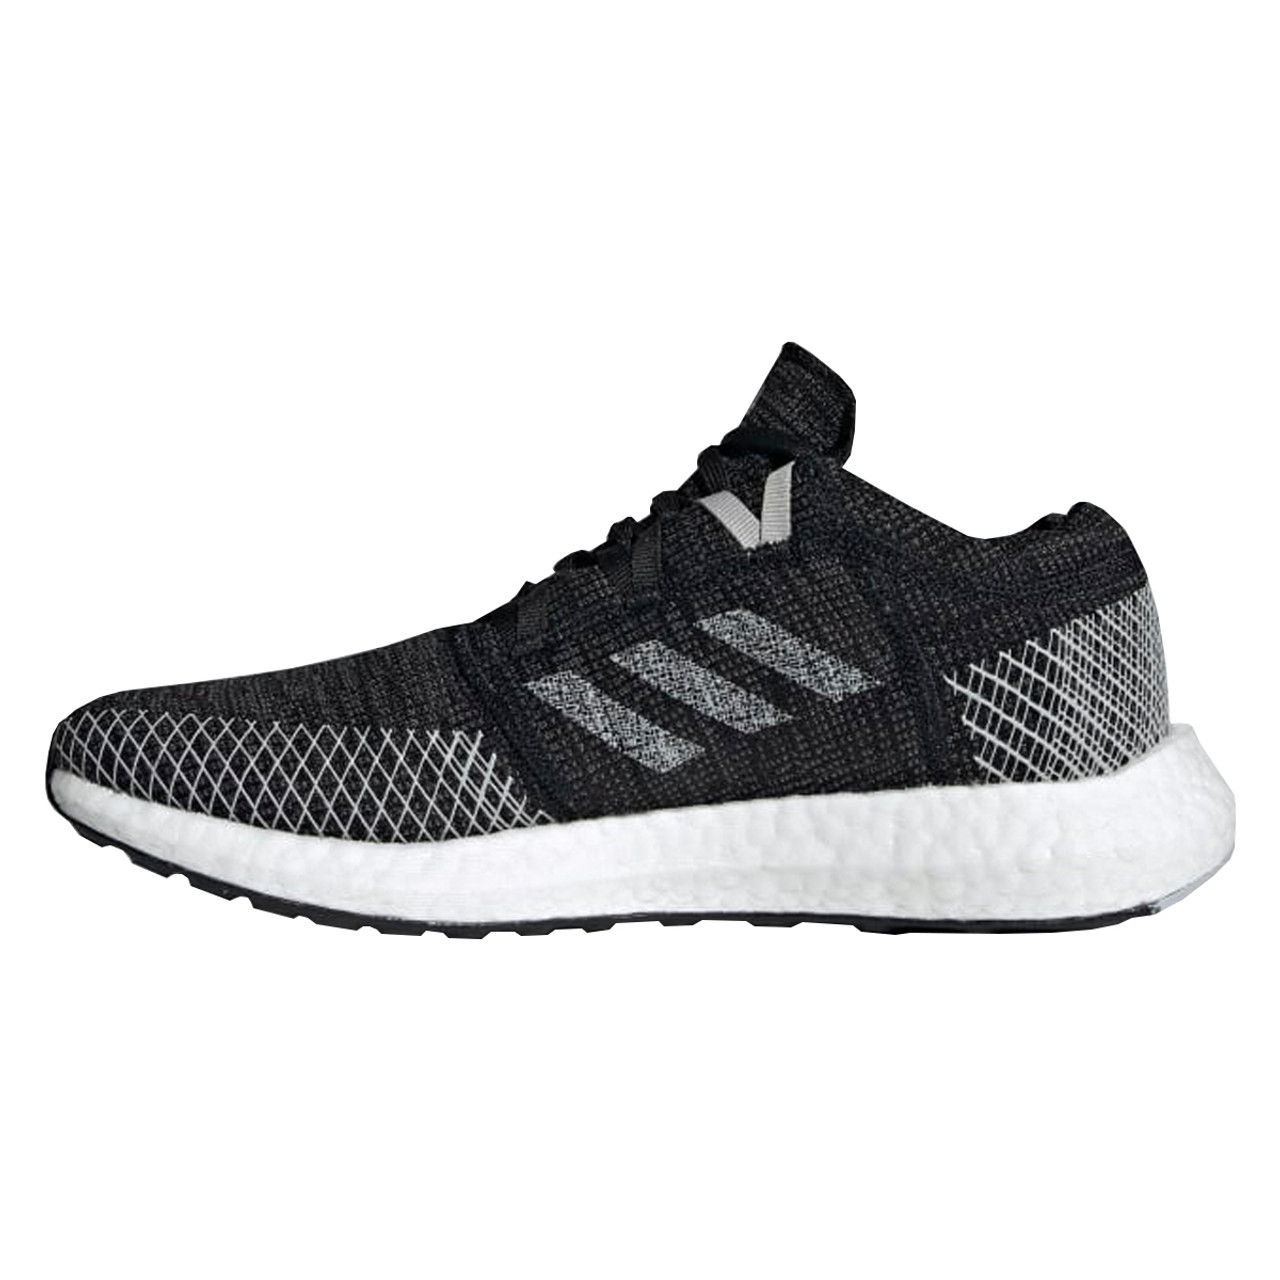 91237b234 ... White · Adidas PureBOOST Go Women s Running Sneakers B75822 - Black